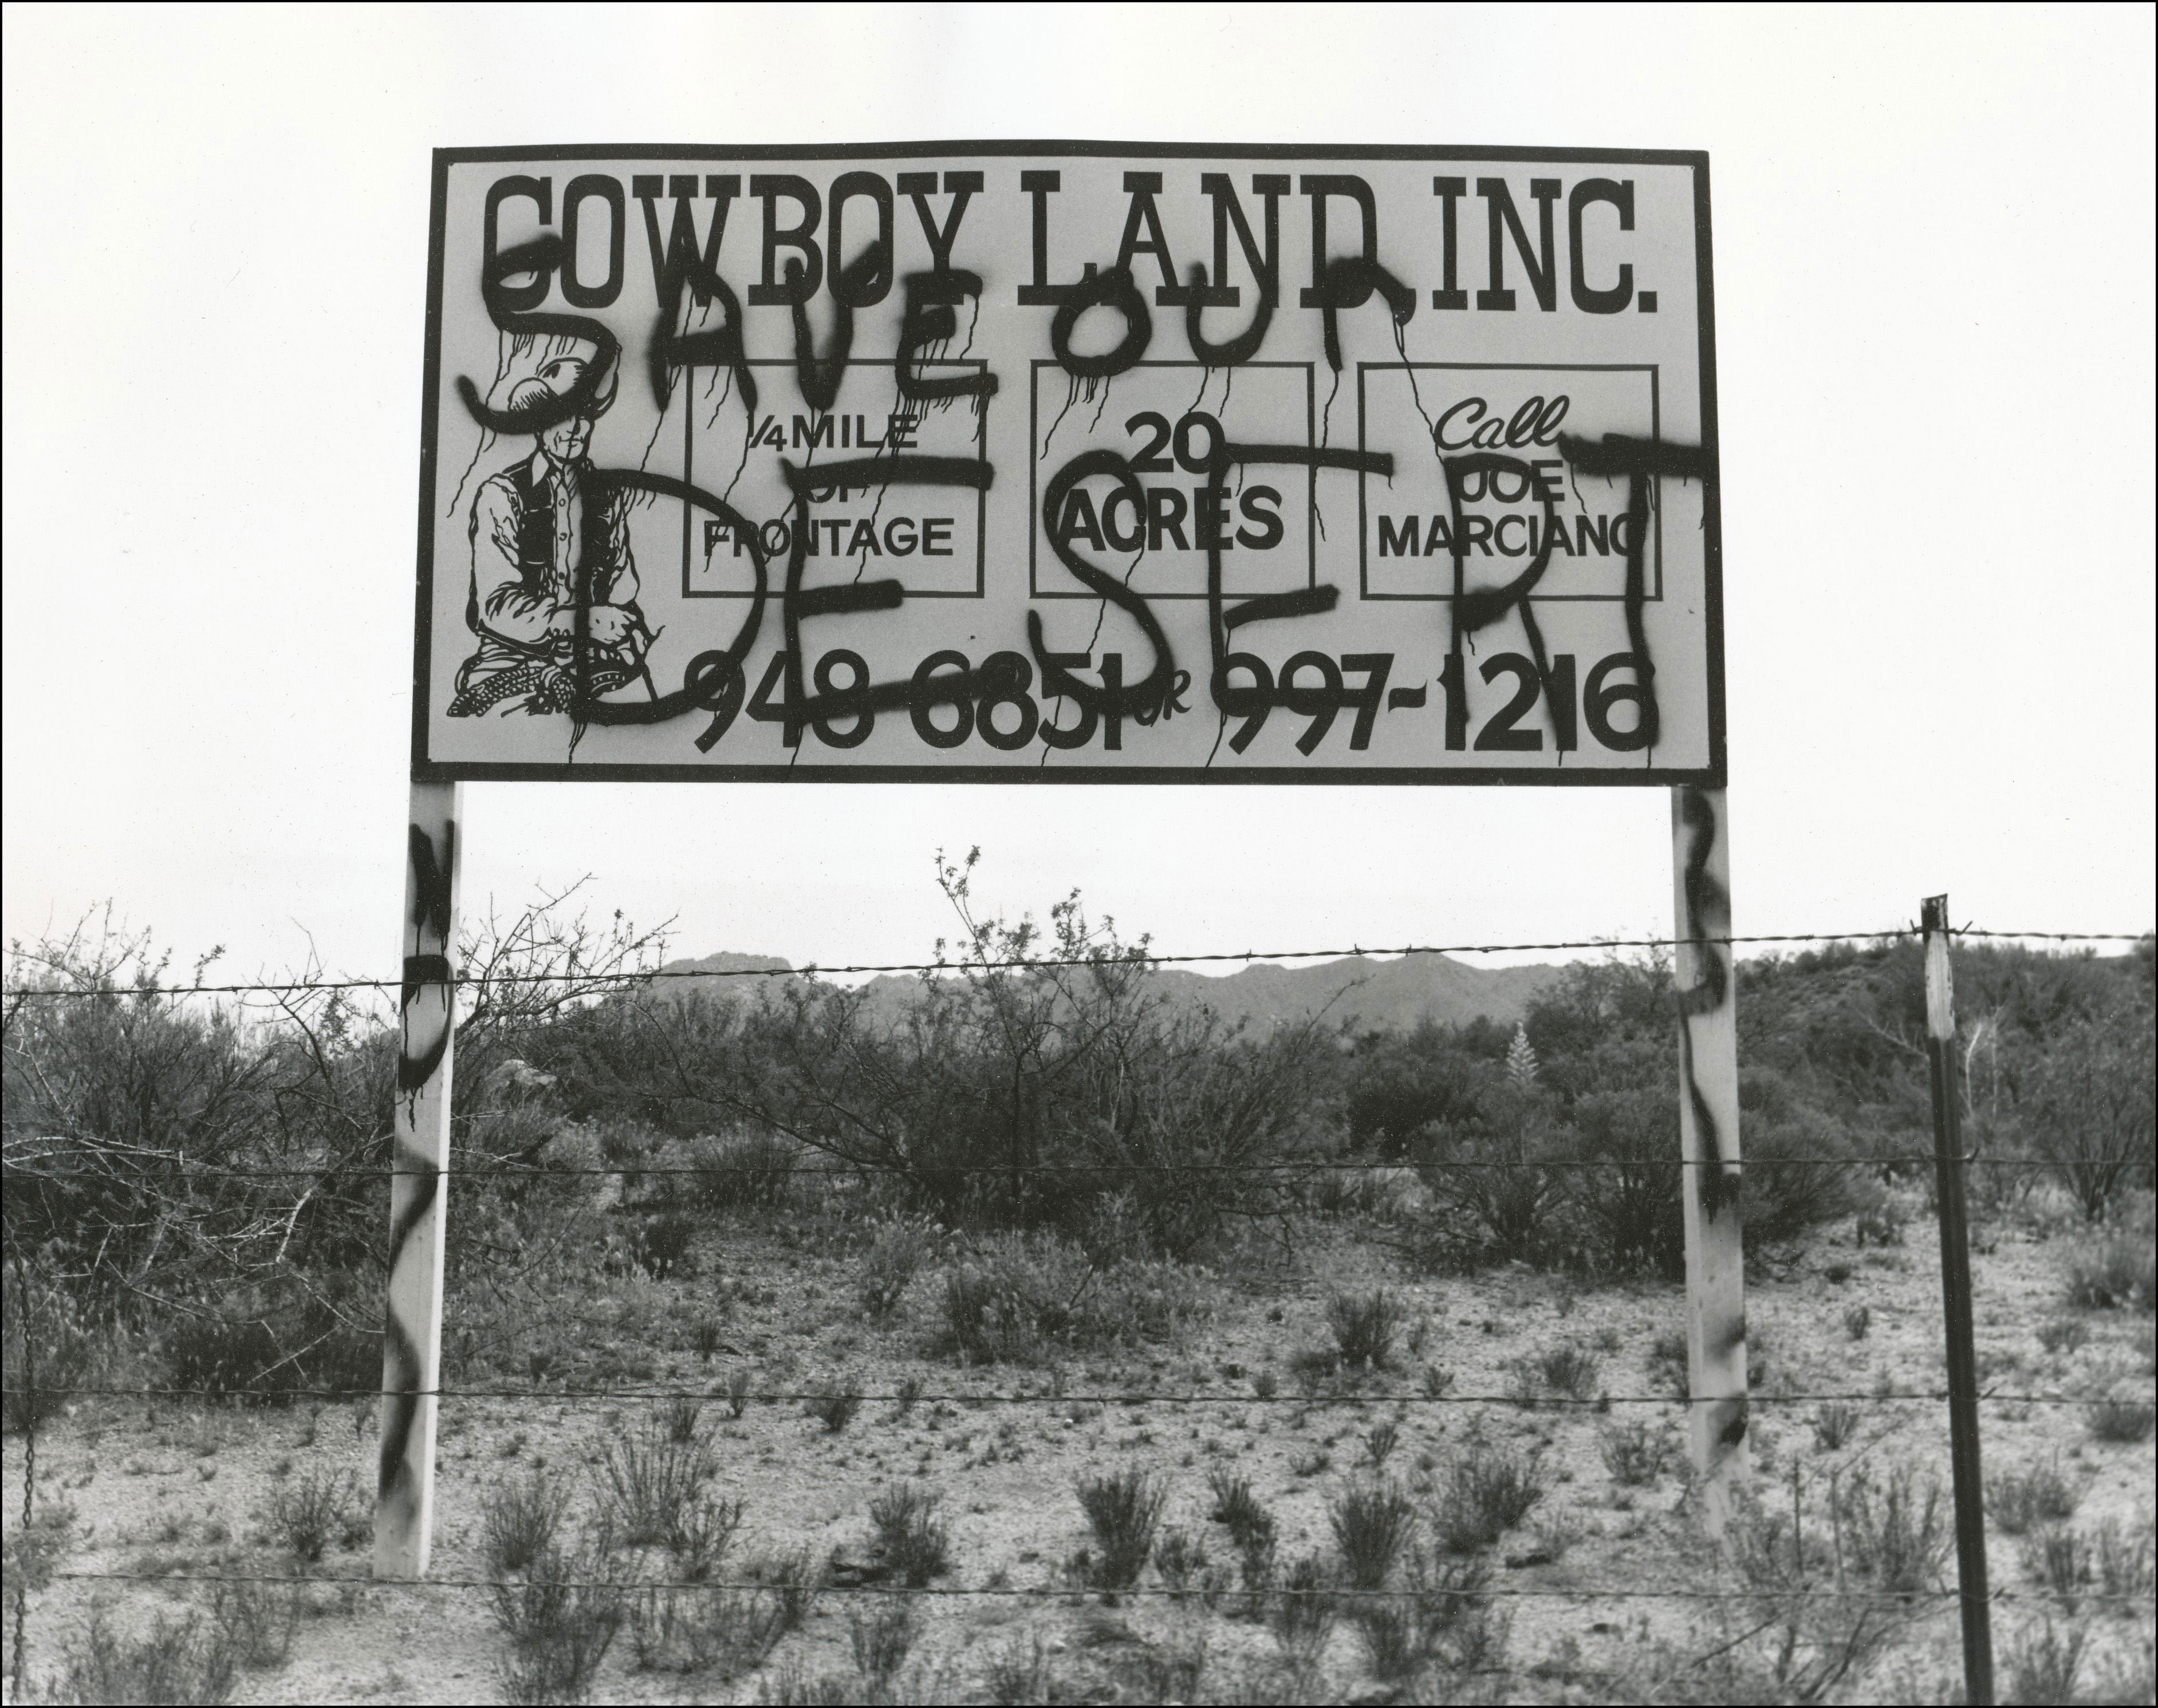 Sign on the side of a road that says Cowboy Land Inc. Quarter mile of frontage, 20 acres, call Joe Marciano, 949-6851, 997-1216. Spray painted over with the words Save our Desert